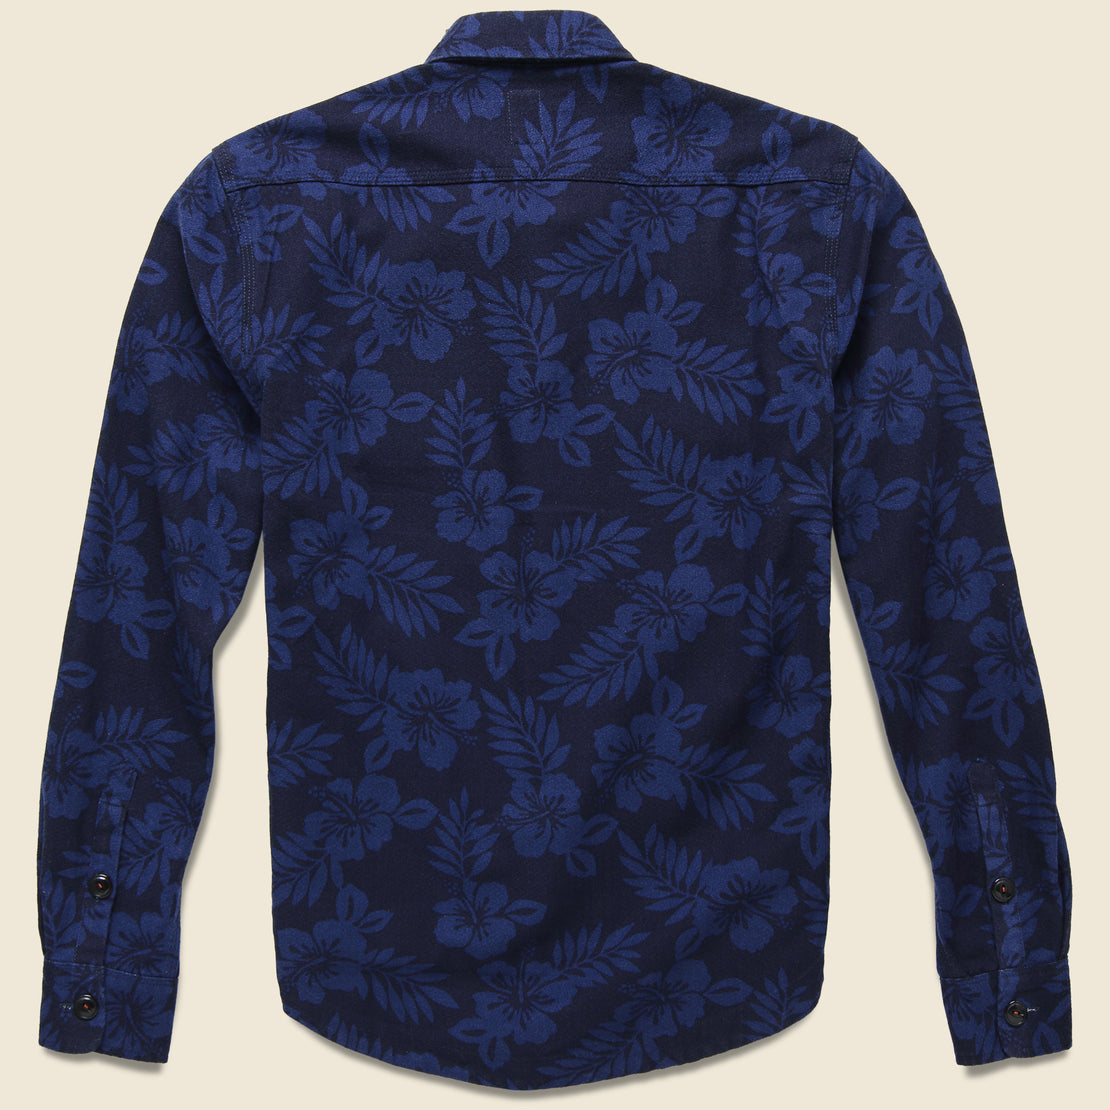 Aloha Print Shirt Jacket - Navy